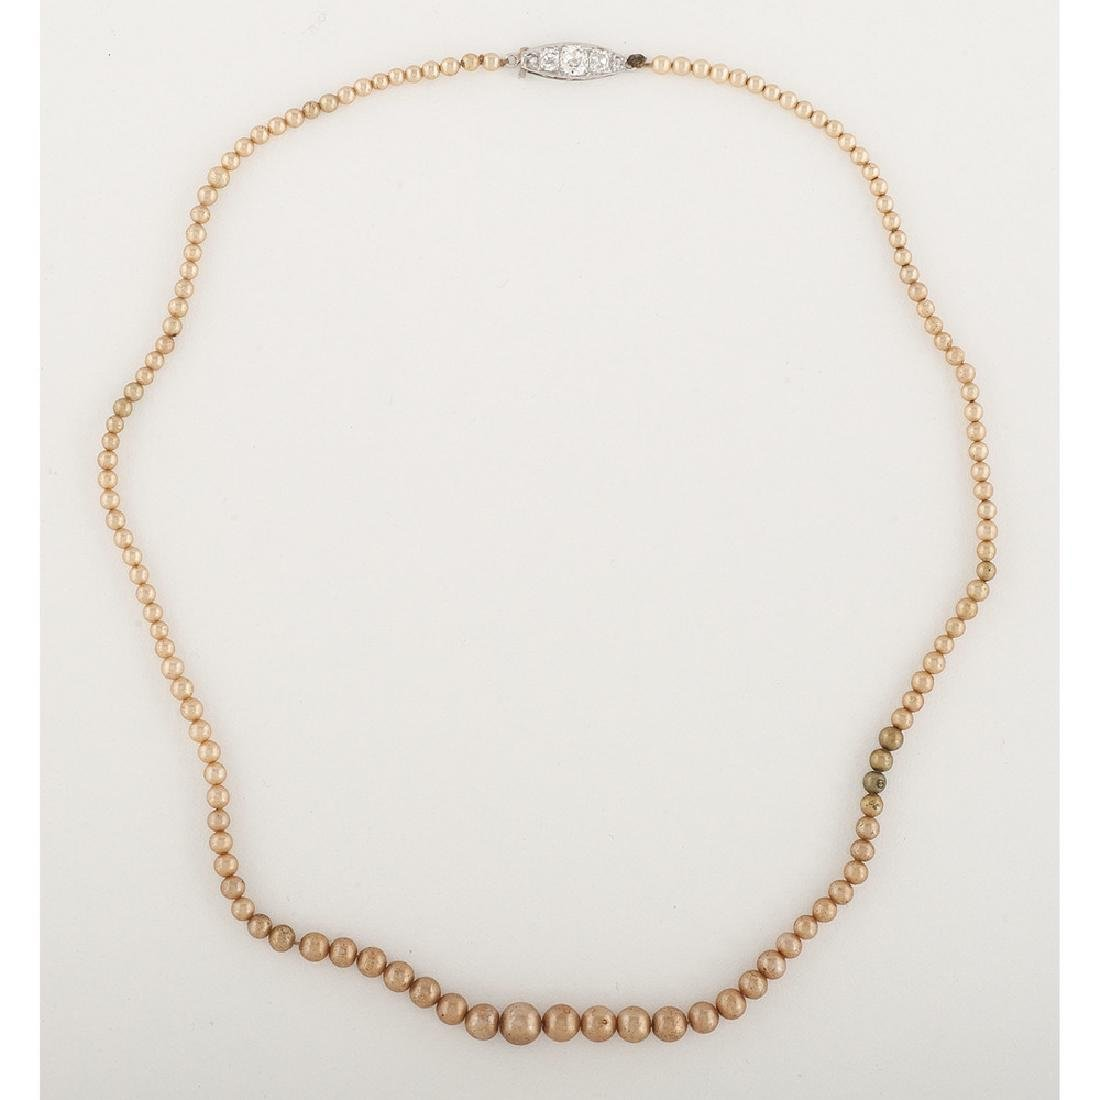 Faux Pearl Necklace with Platinum Diamond Clasp